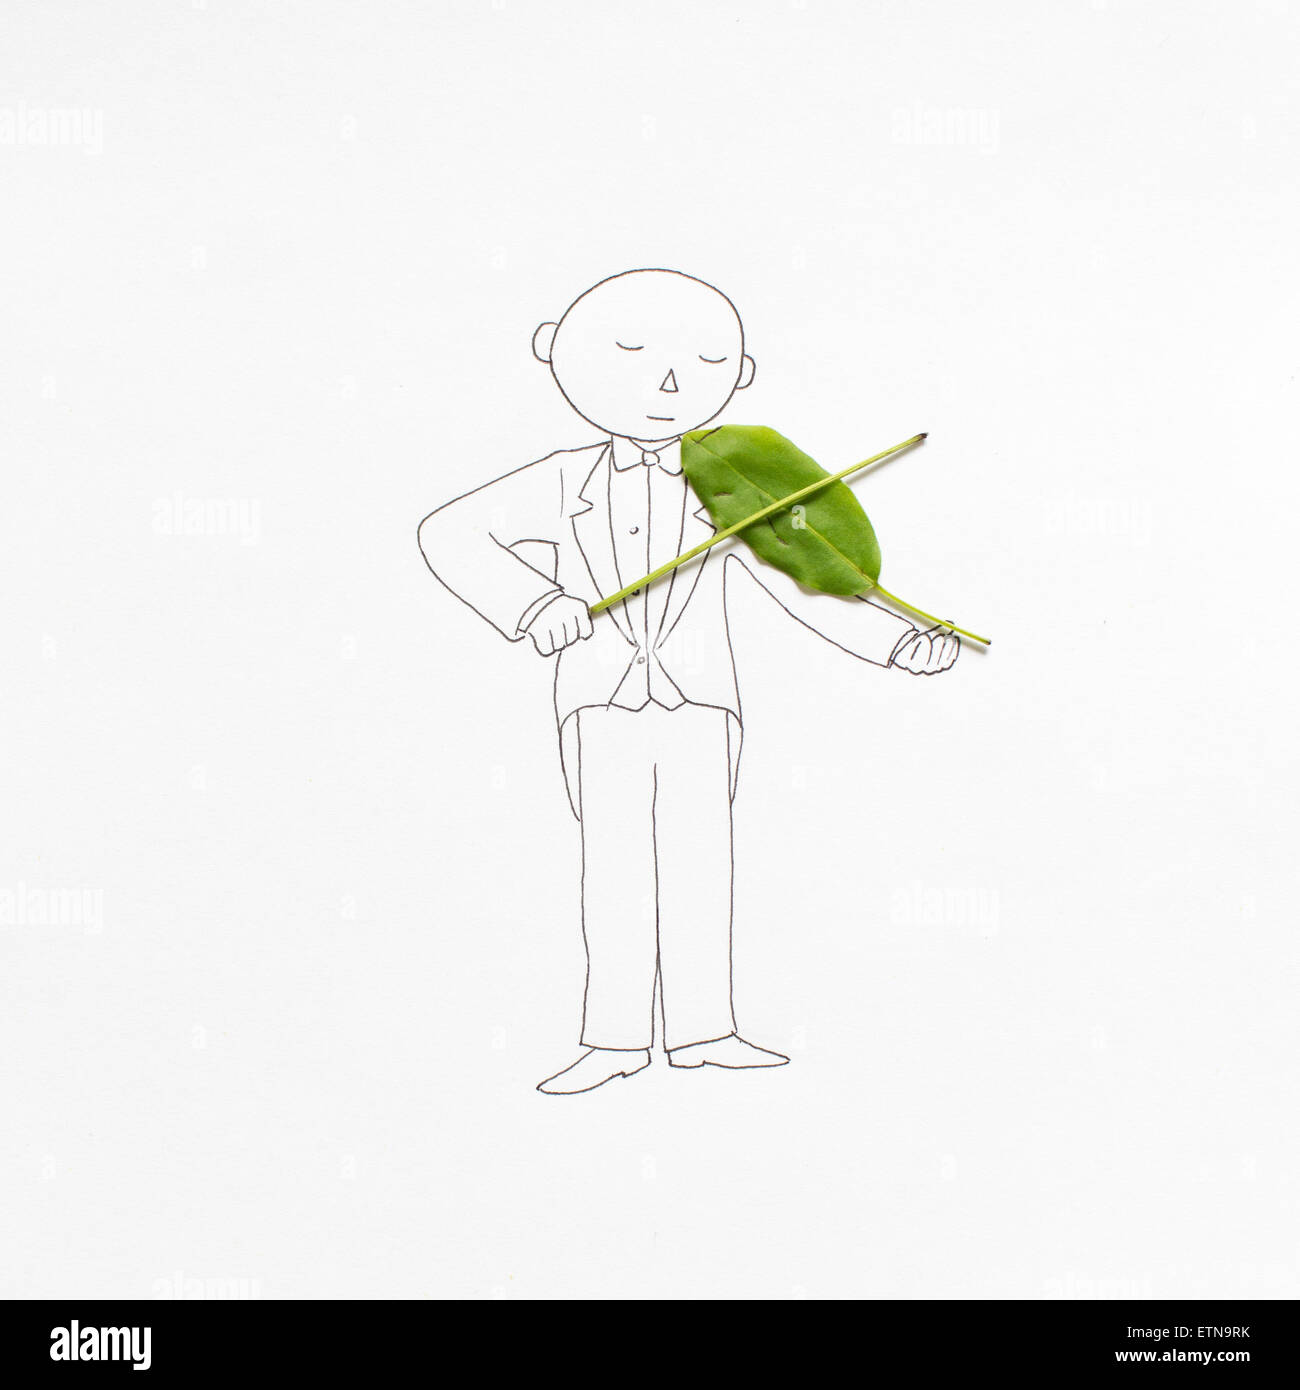 Conceptual drawing of a man playing the violin - Stock Image